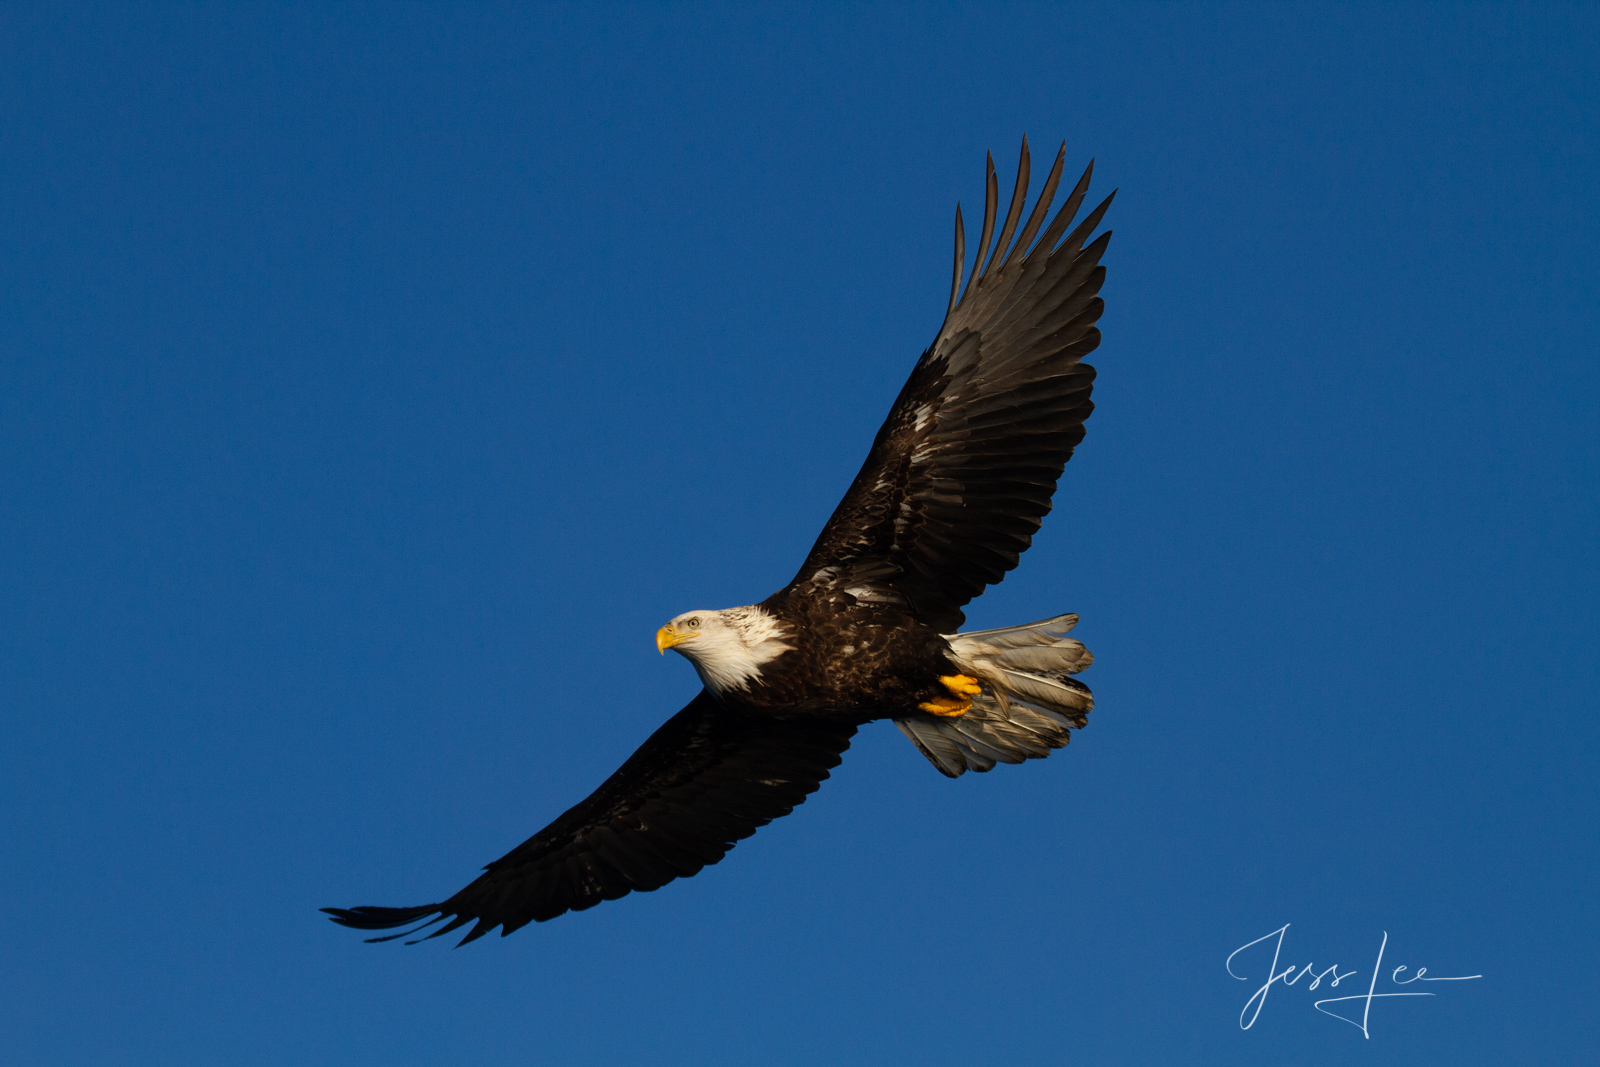 Bring home the power and beauty of the amazing fine art American Bald Eagle photograph Master of Flight by Jess Lee from his...